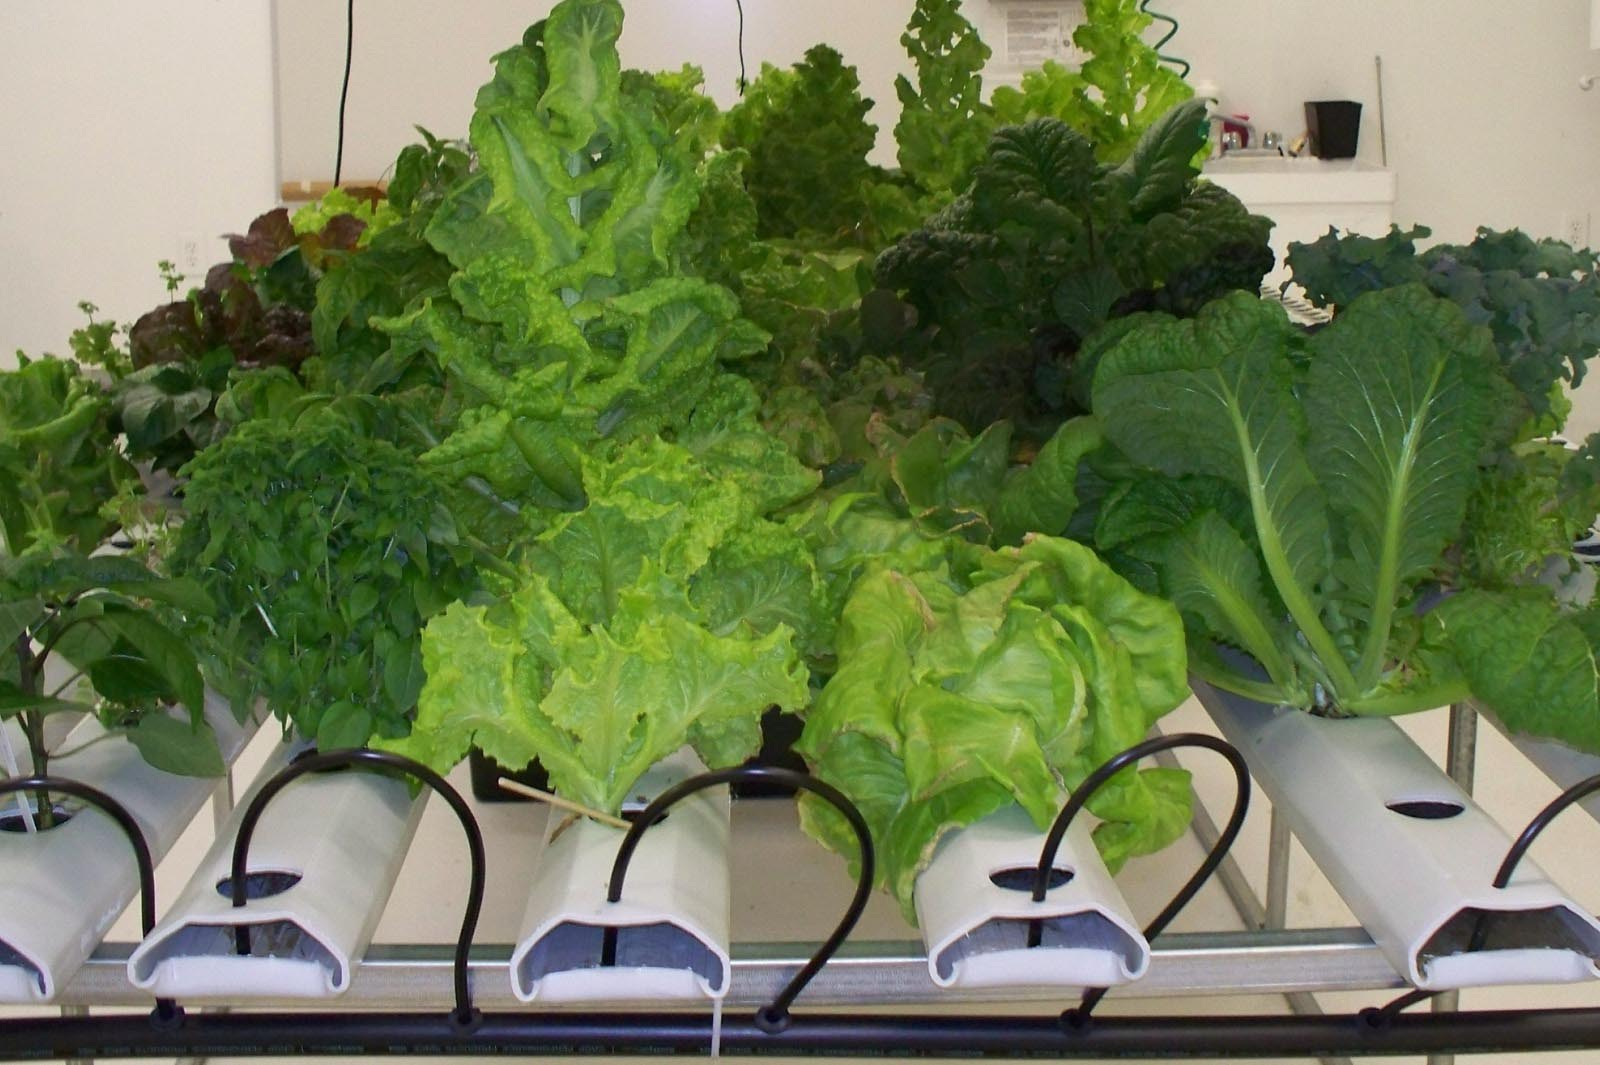 Best vegetables for indoor gardening garden design ideas for Indoor vegetable gardening tips